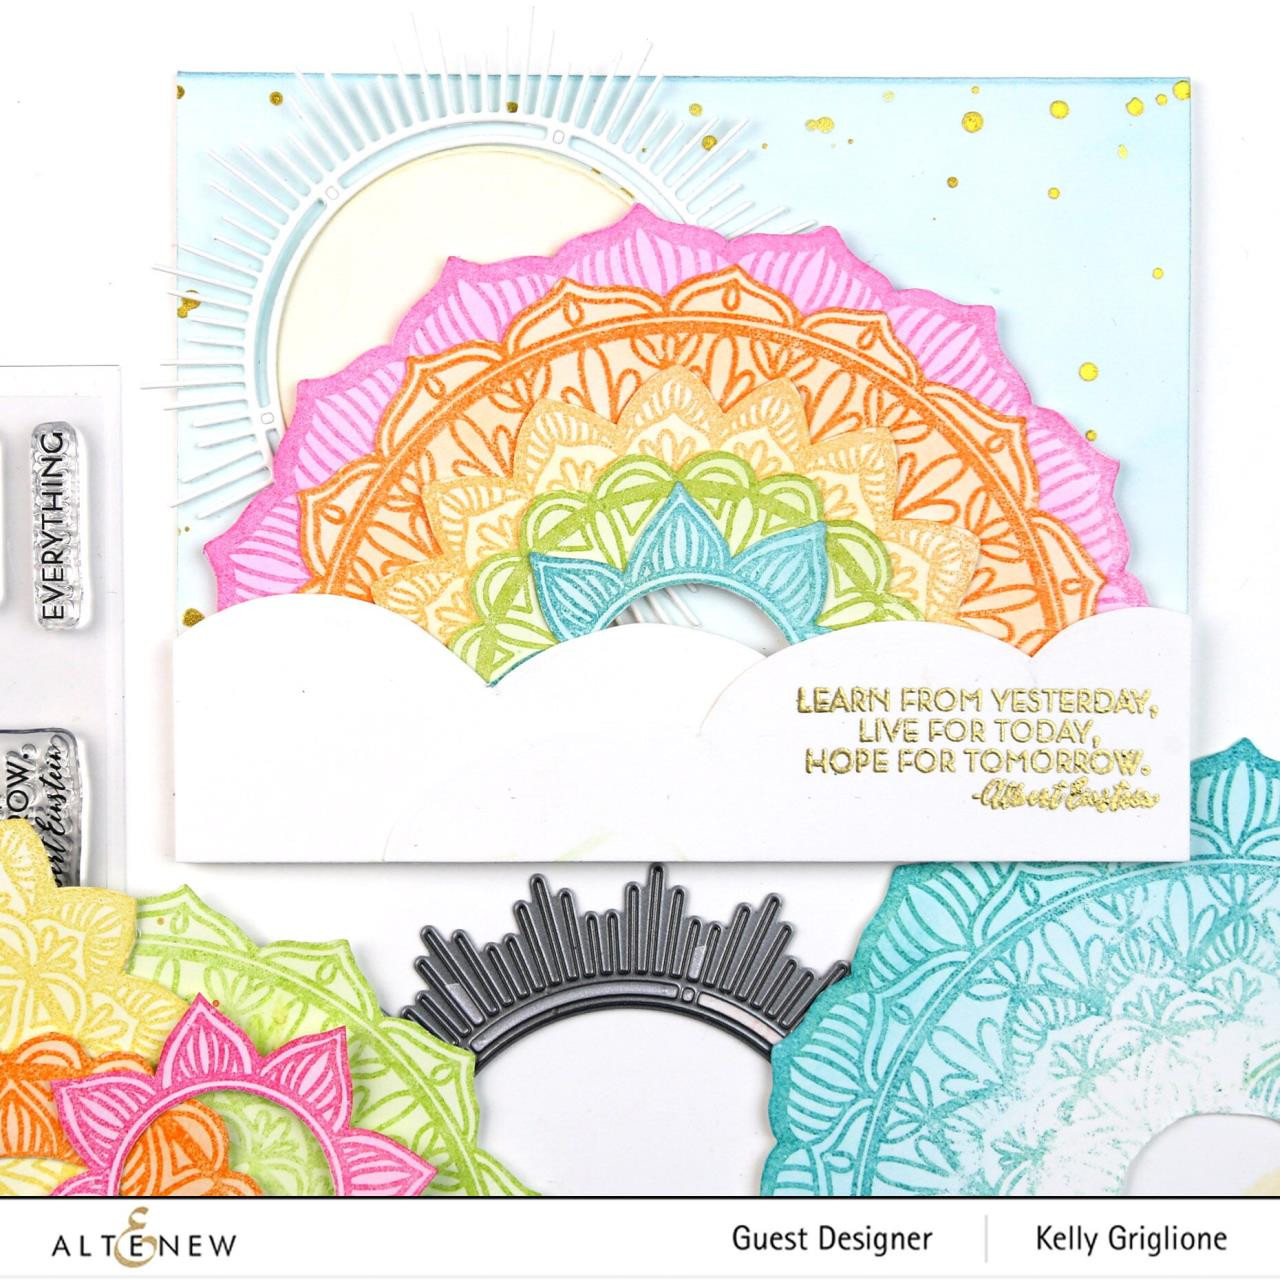 Pen Sketch Mandala, Altenew Clear Stamps - 704831301694